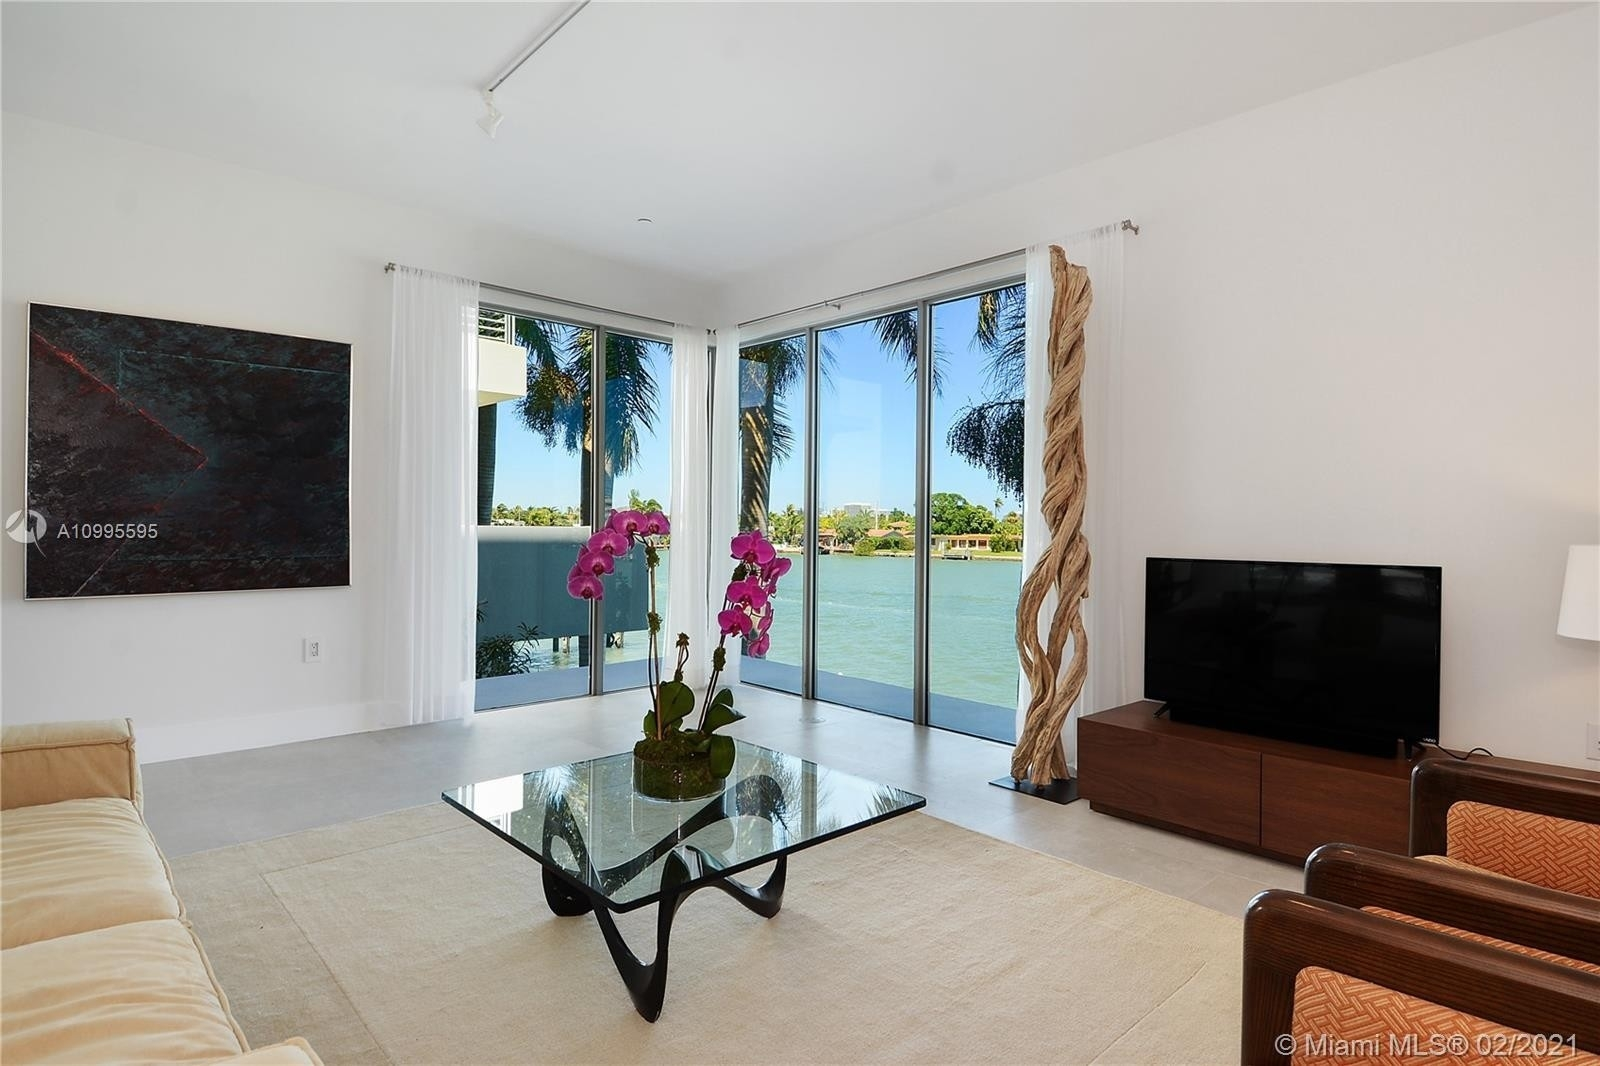 Property à 171 N Shore Dr , 171-5 Normandy Shores, Miami Beach, FL 33141